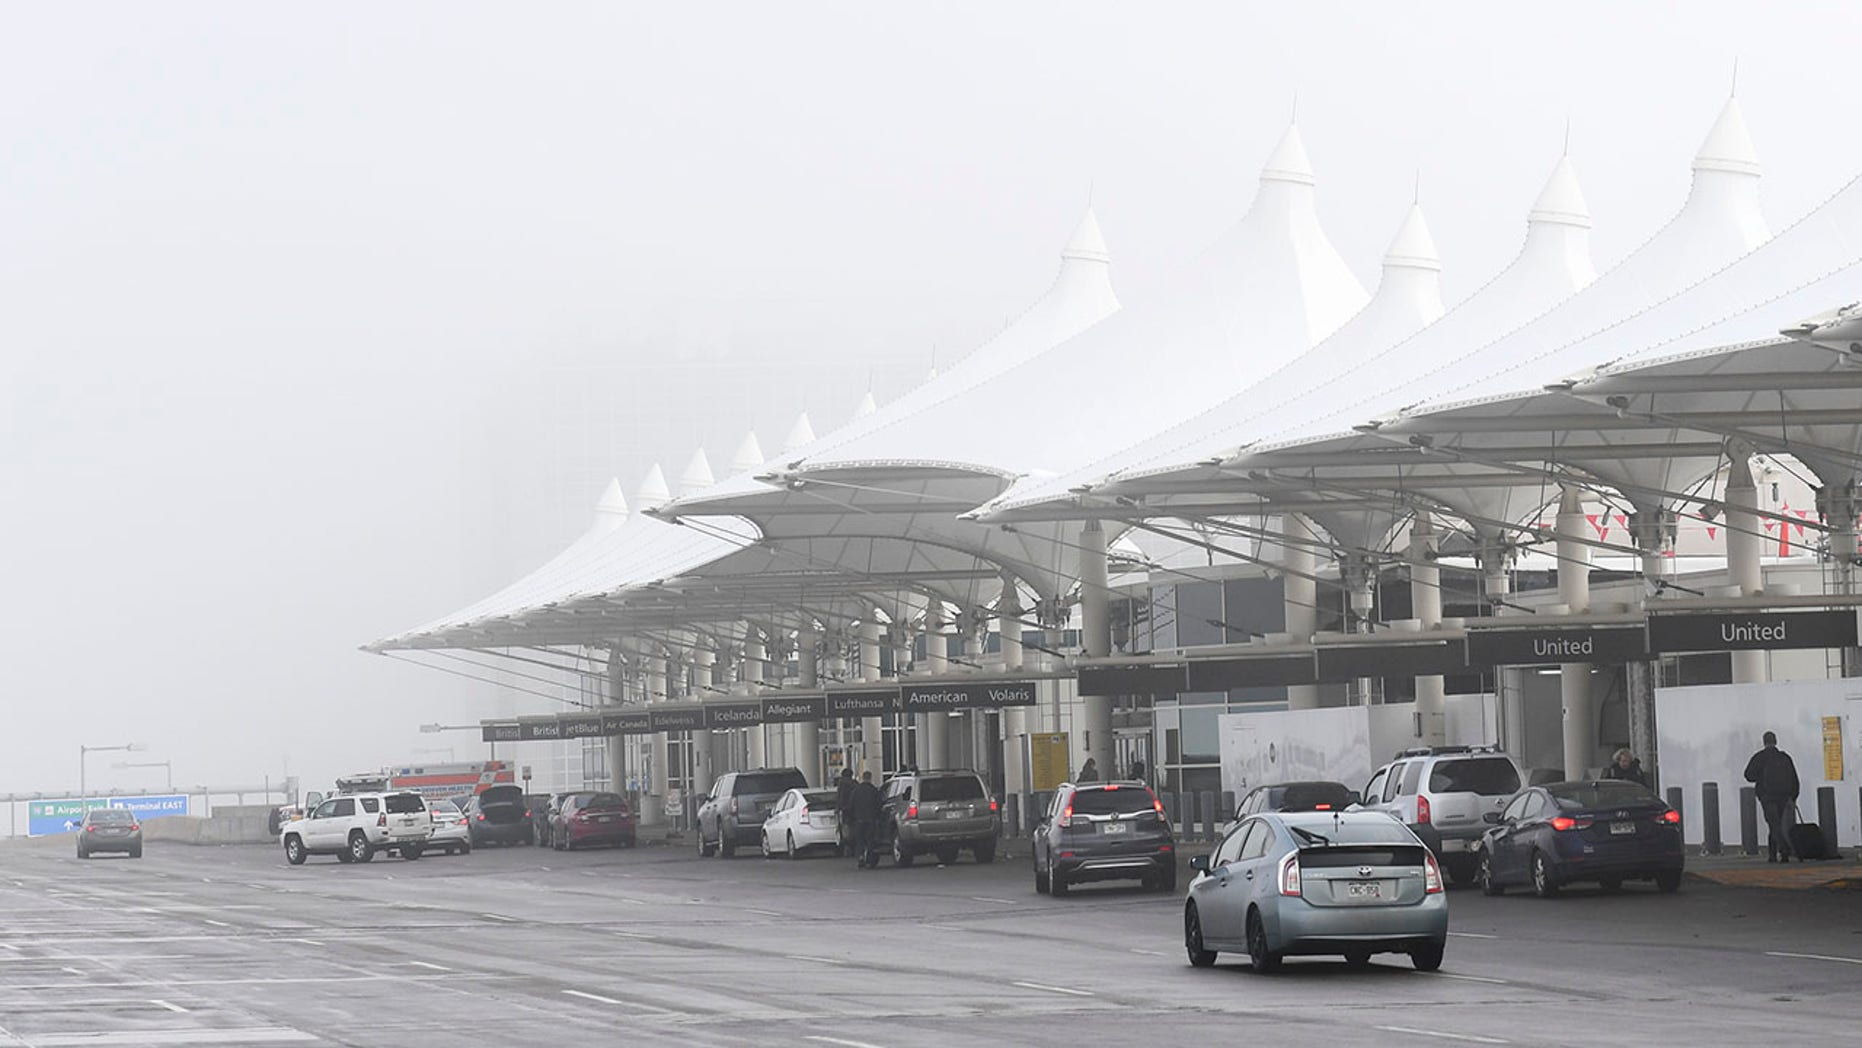 Cars line up outside Denver International Airport on Feb. 26, 2019. (Getty Images)